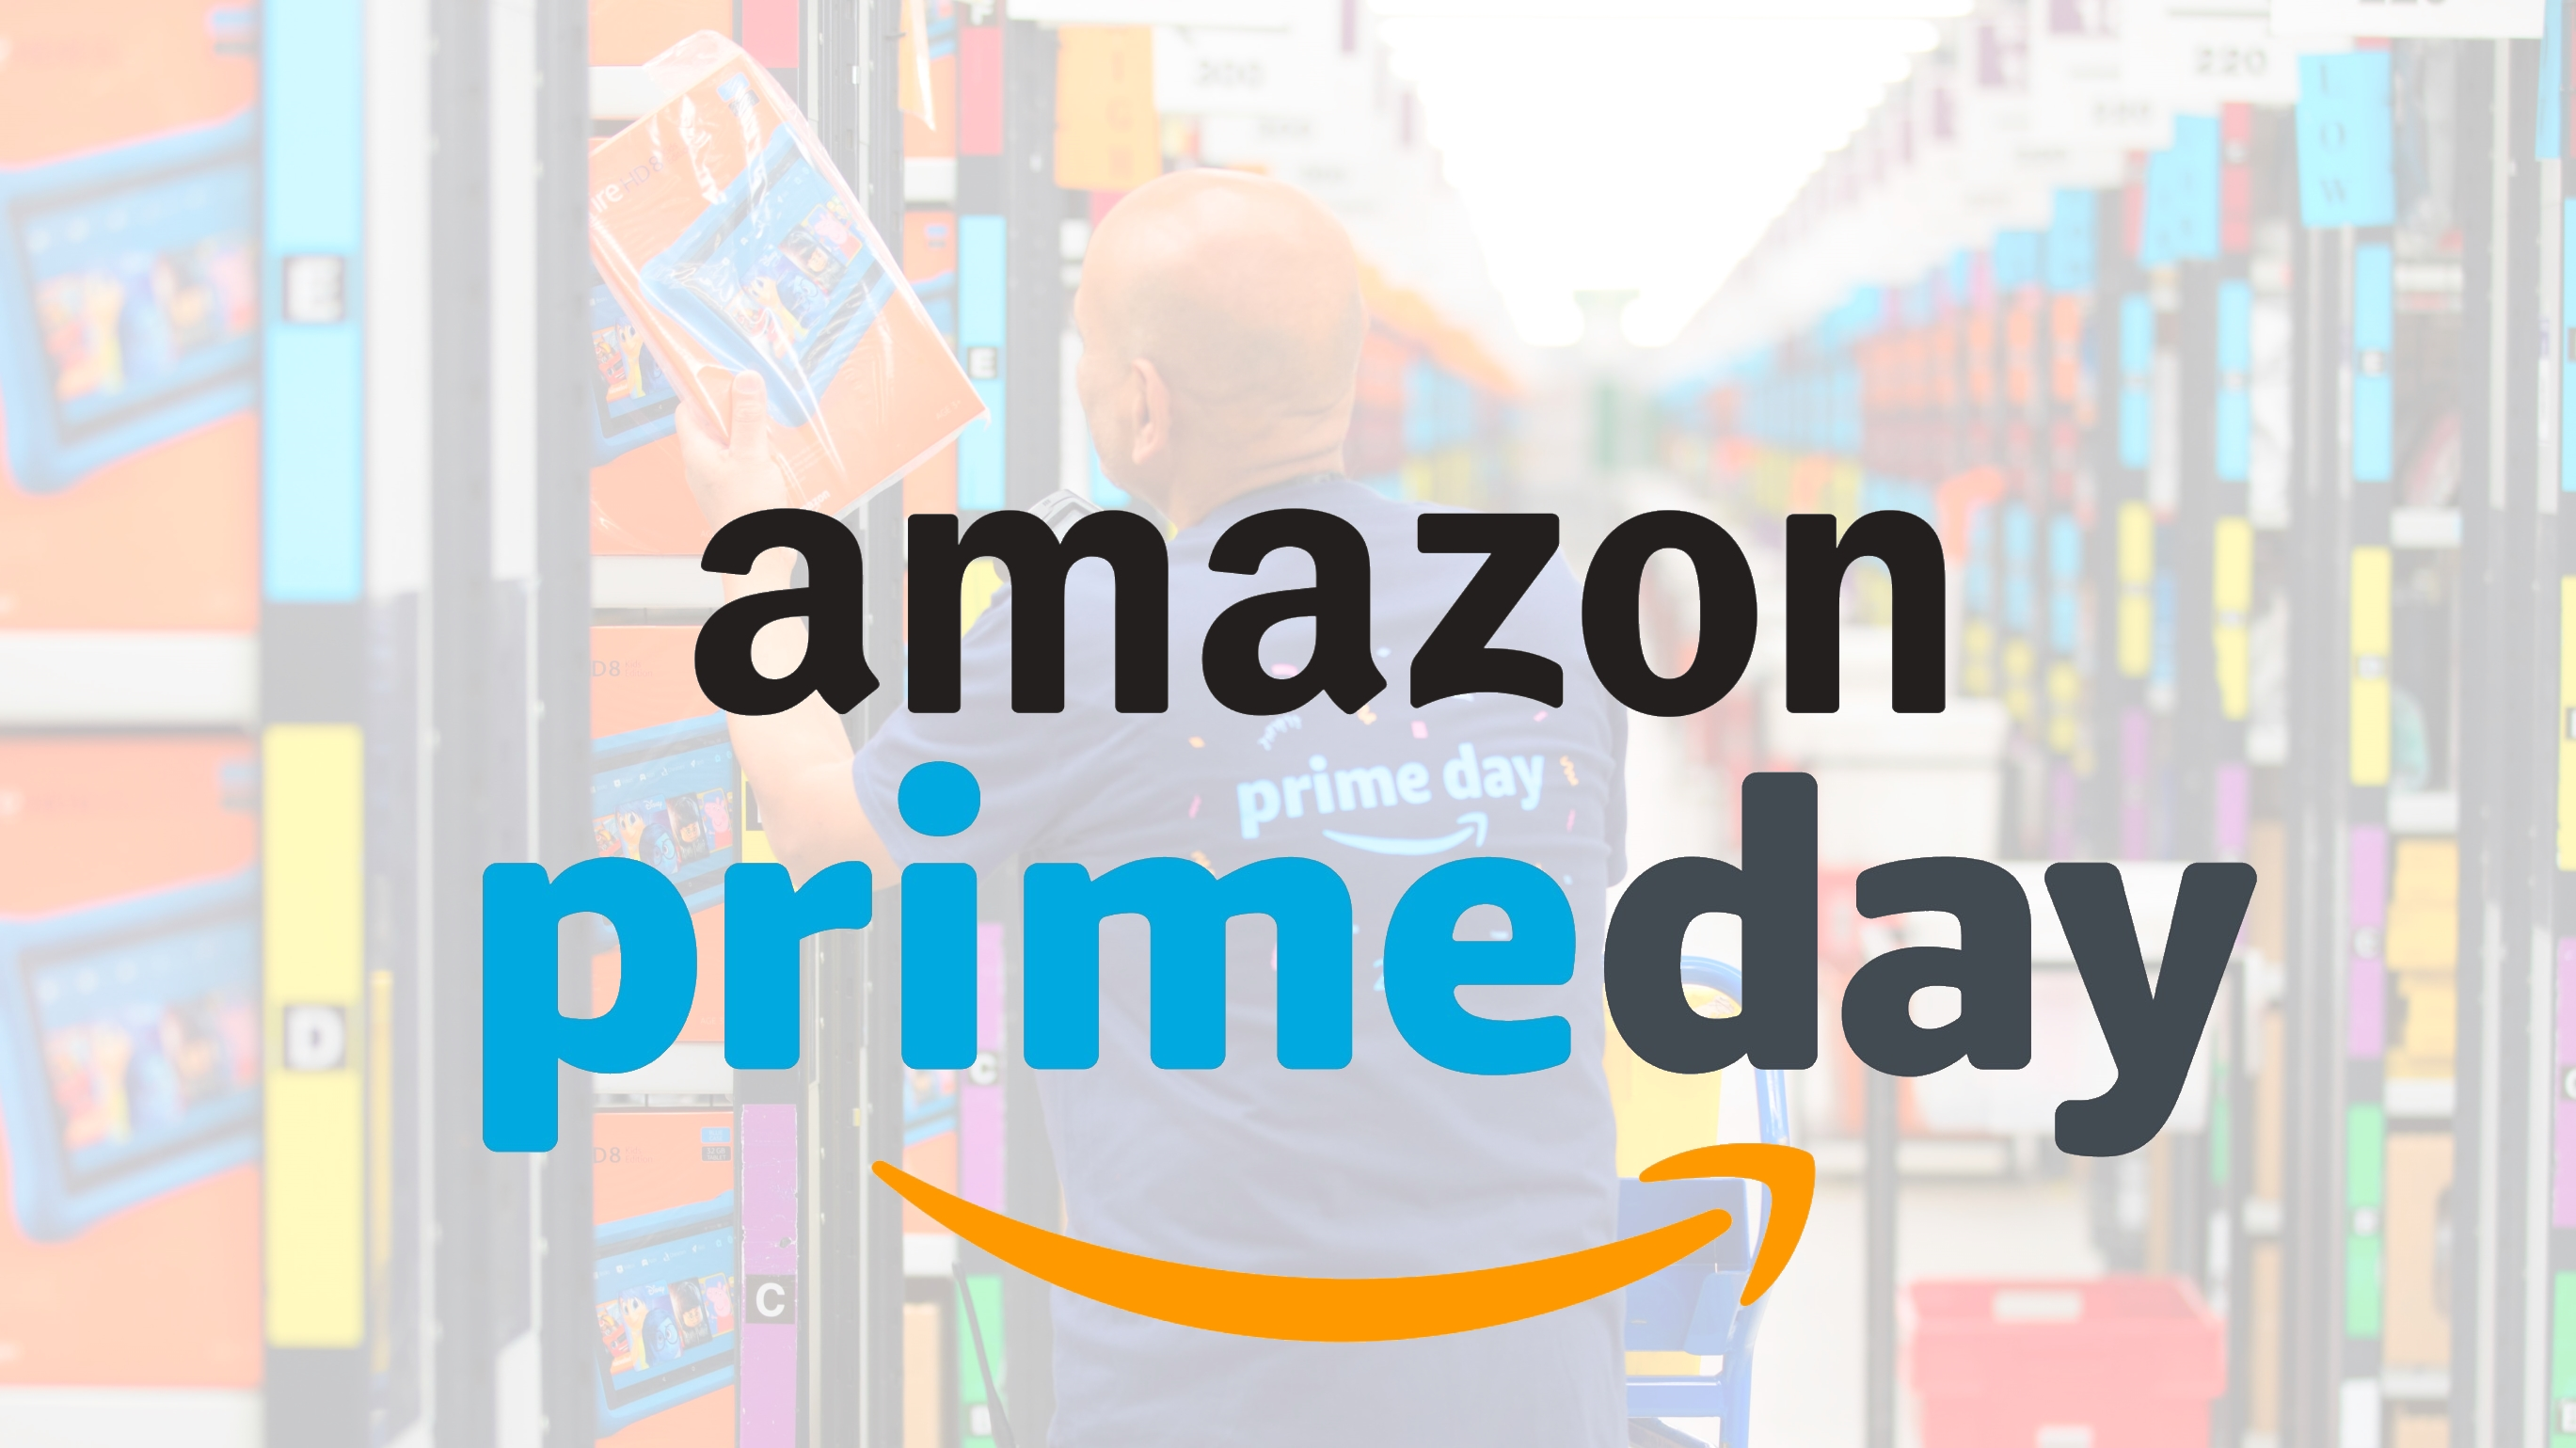 Amazon Prime Day Phone Deals Google Pixel 3a Samsung Galaxy S9 LG V35 ThinQ Moto G6 Moto X4